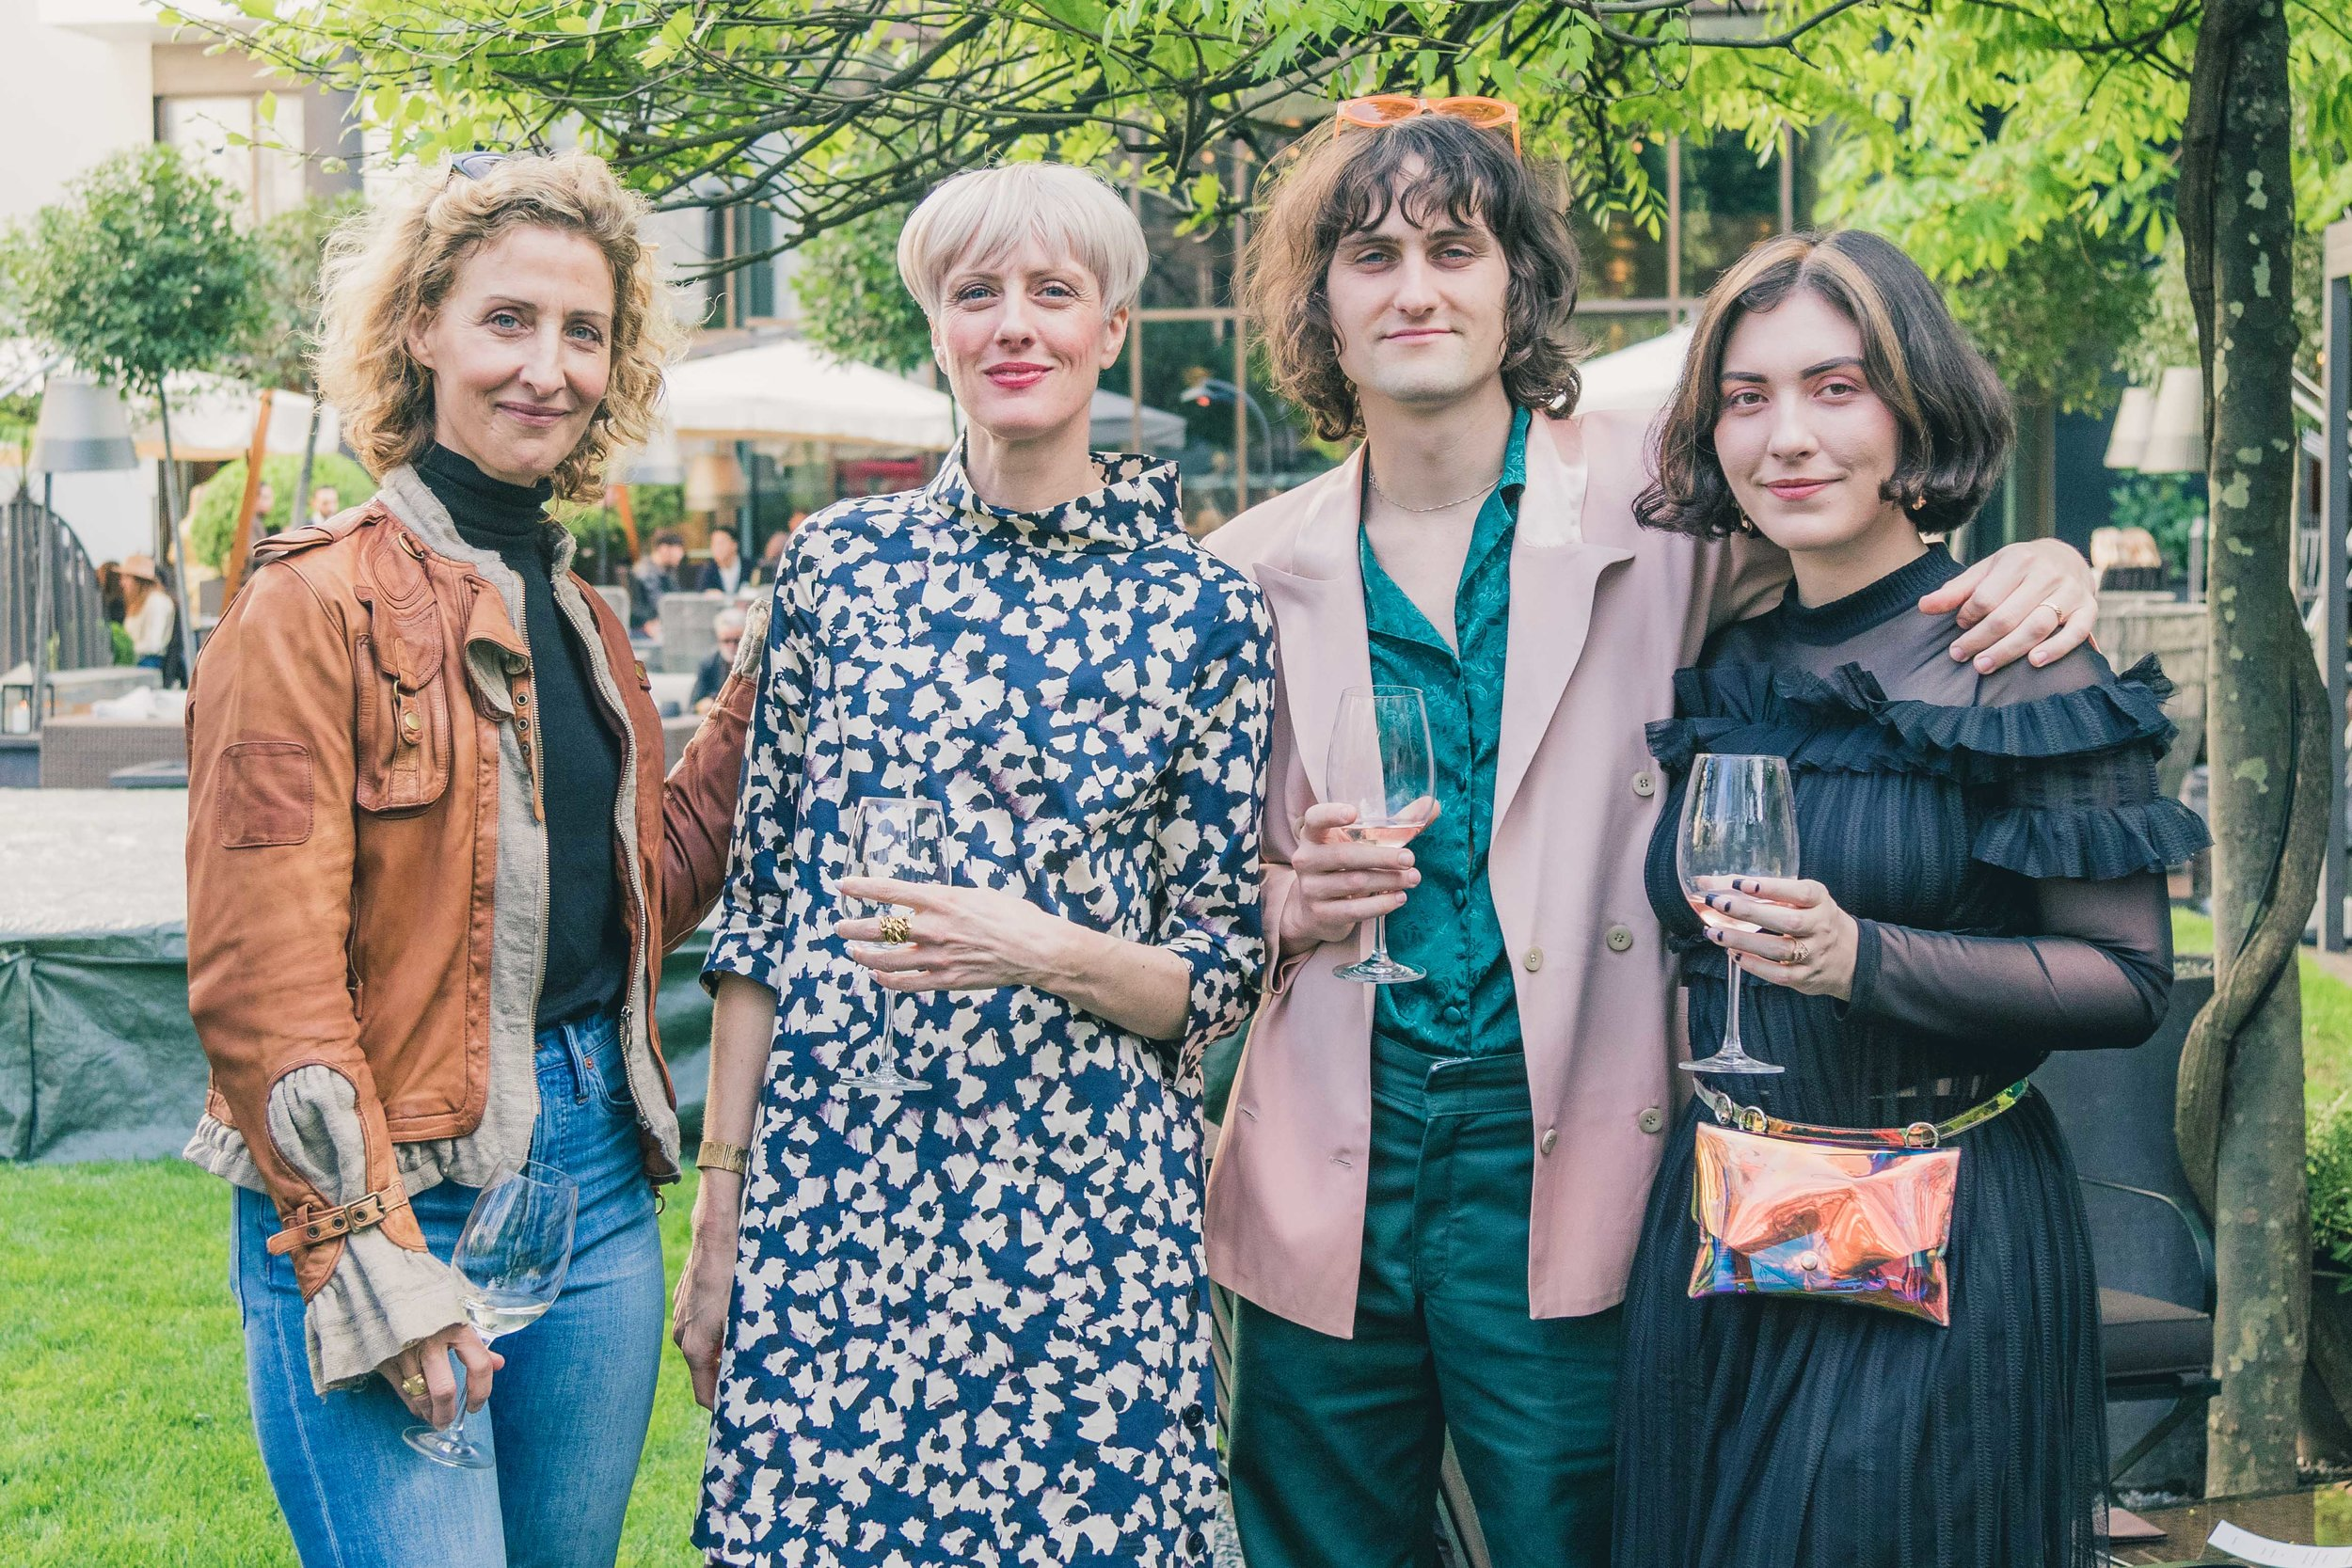 Dana Joy Altman of Snyder Diamond, Barbara Rourke of Bells & Whistles, musician Cale Chronister and and wife, designer Bailey Lafitte Chronister